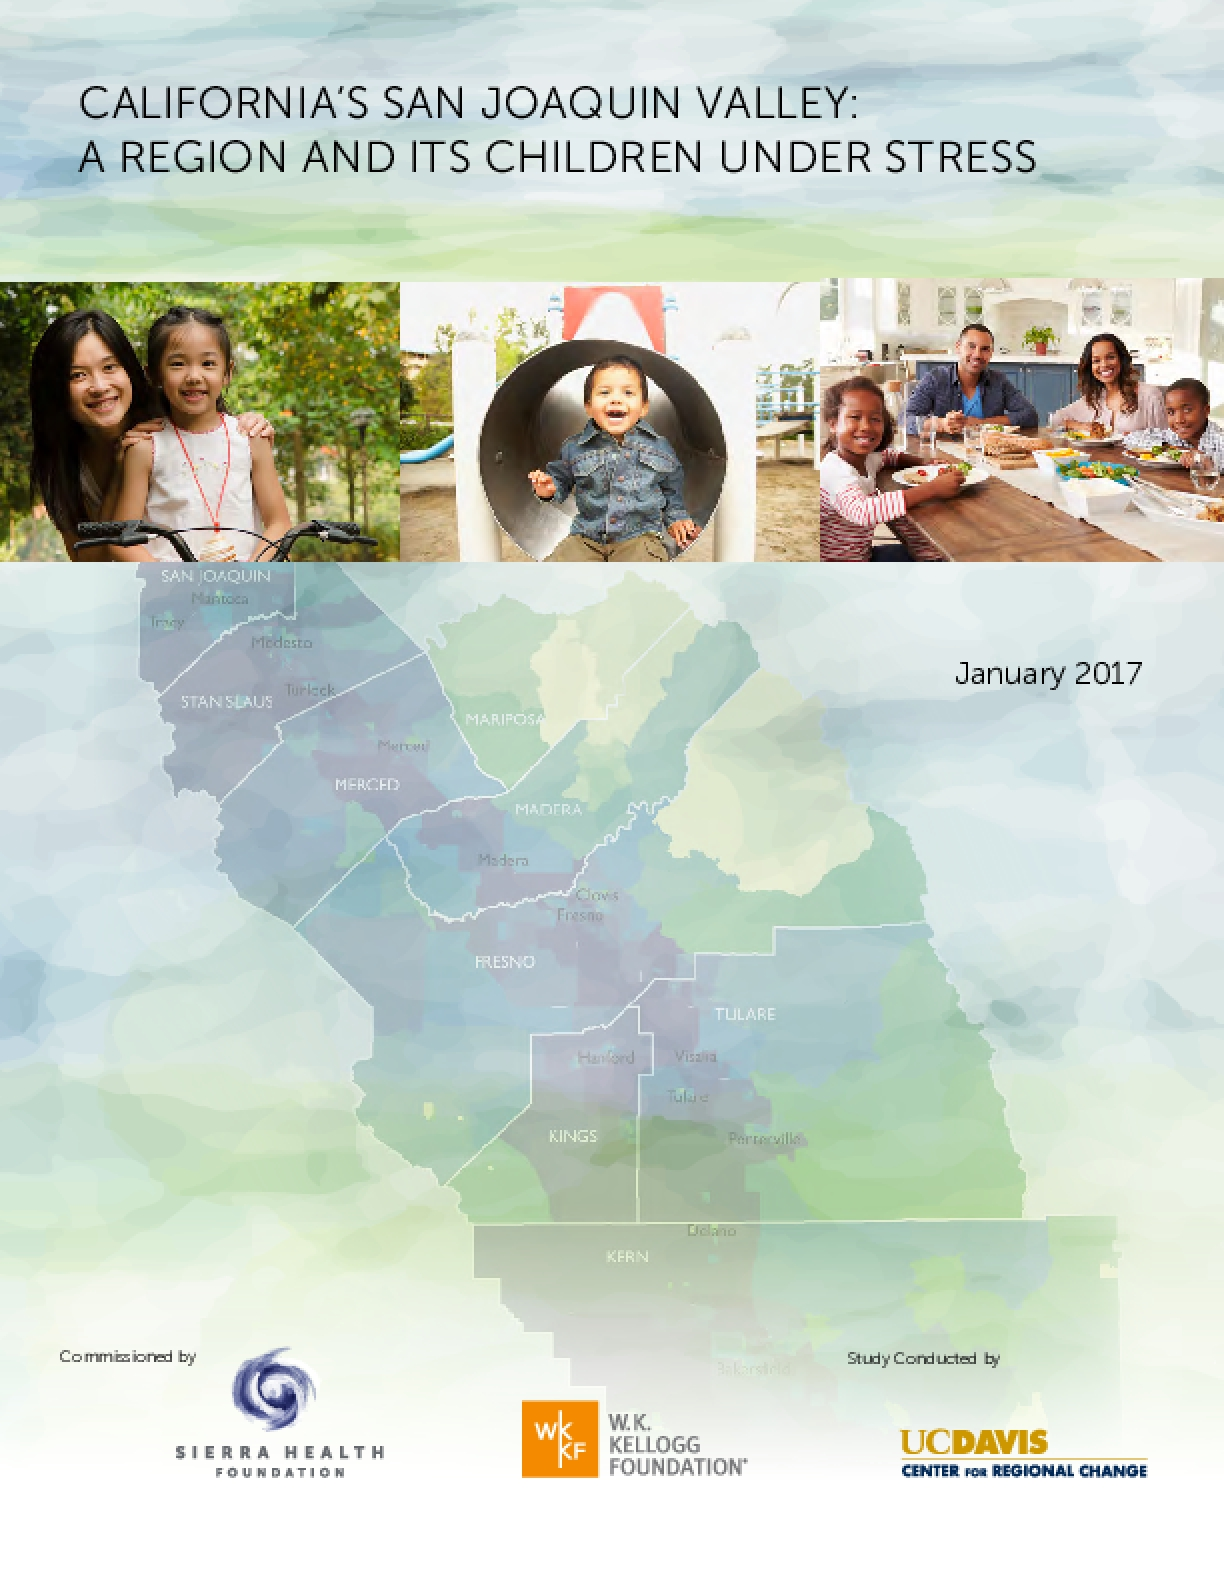 California's San Joaquin Valley: A Region and its Children Under Stress